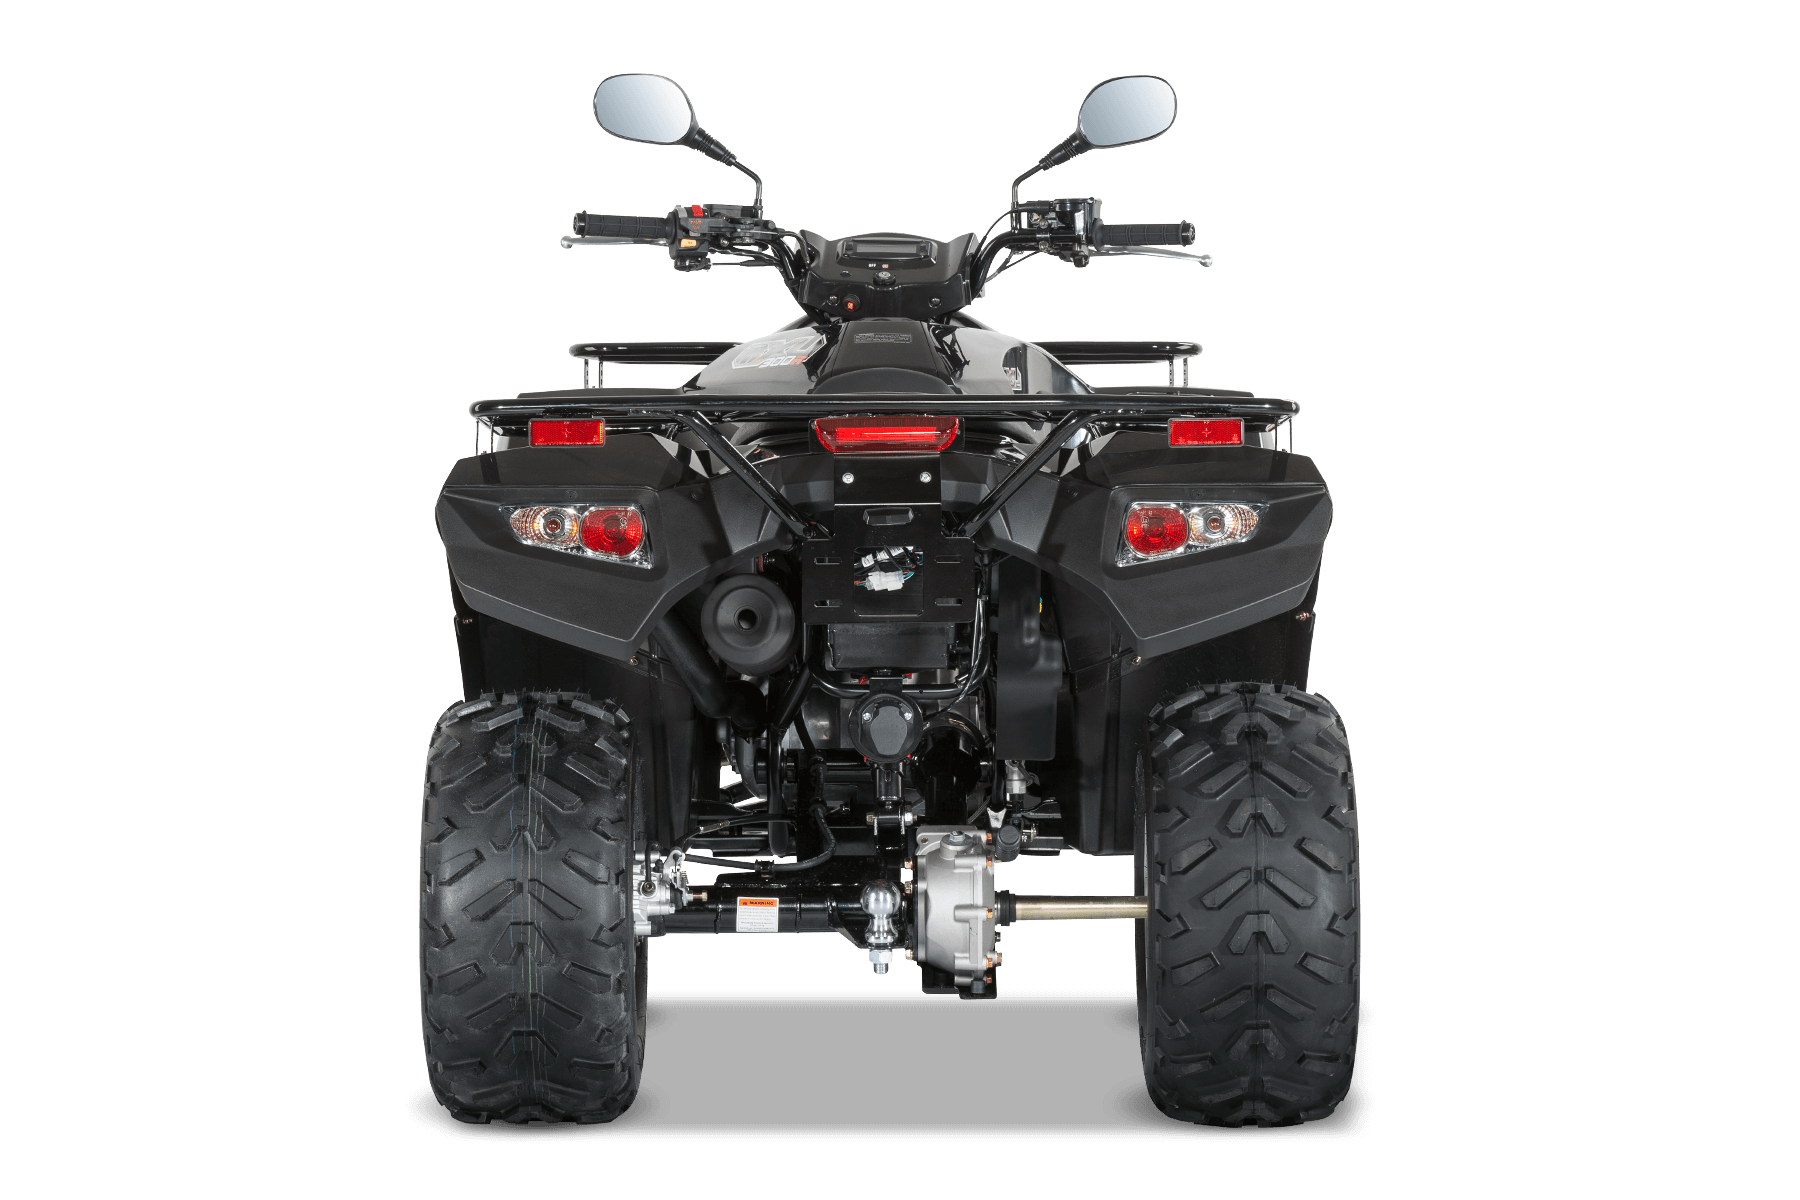 atv quad kymco mxu 300 r offroad 20 ps 271 ccm lof zulassung. Black Bedroom Furniture Sets. Home Design Ideas